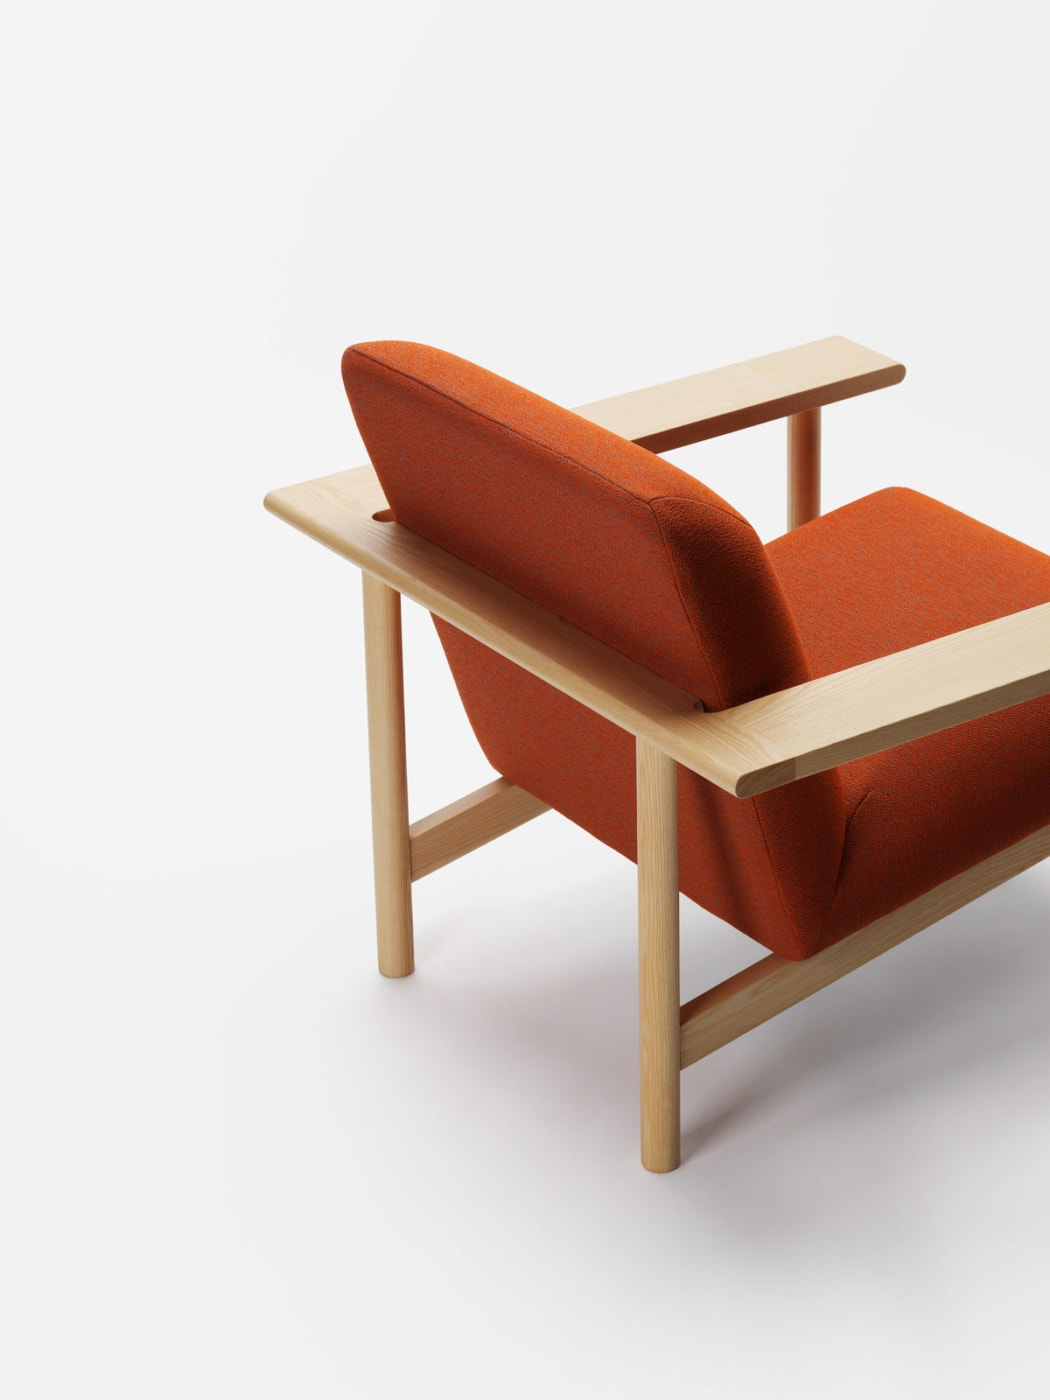 Furniture Design by London Studio Mentsen 16